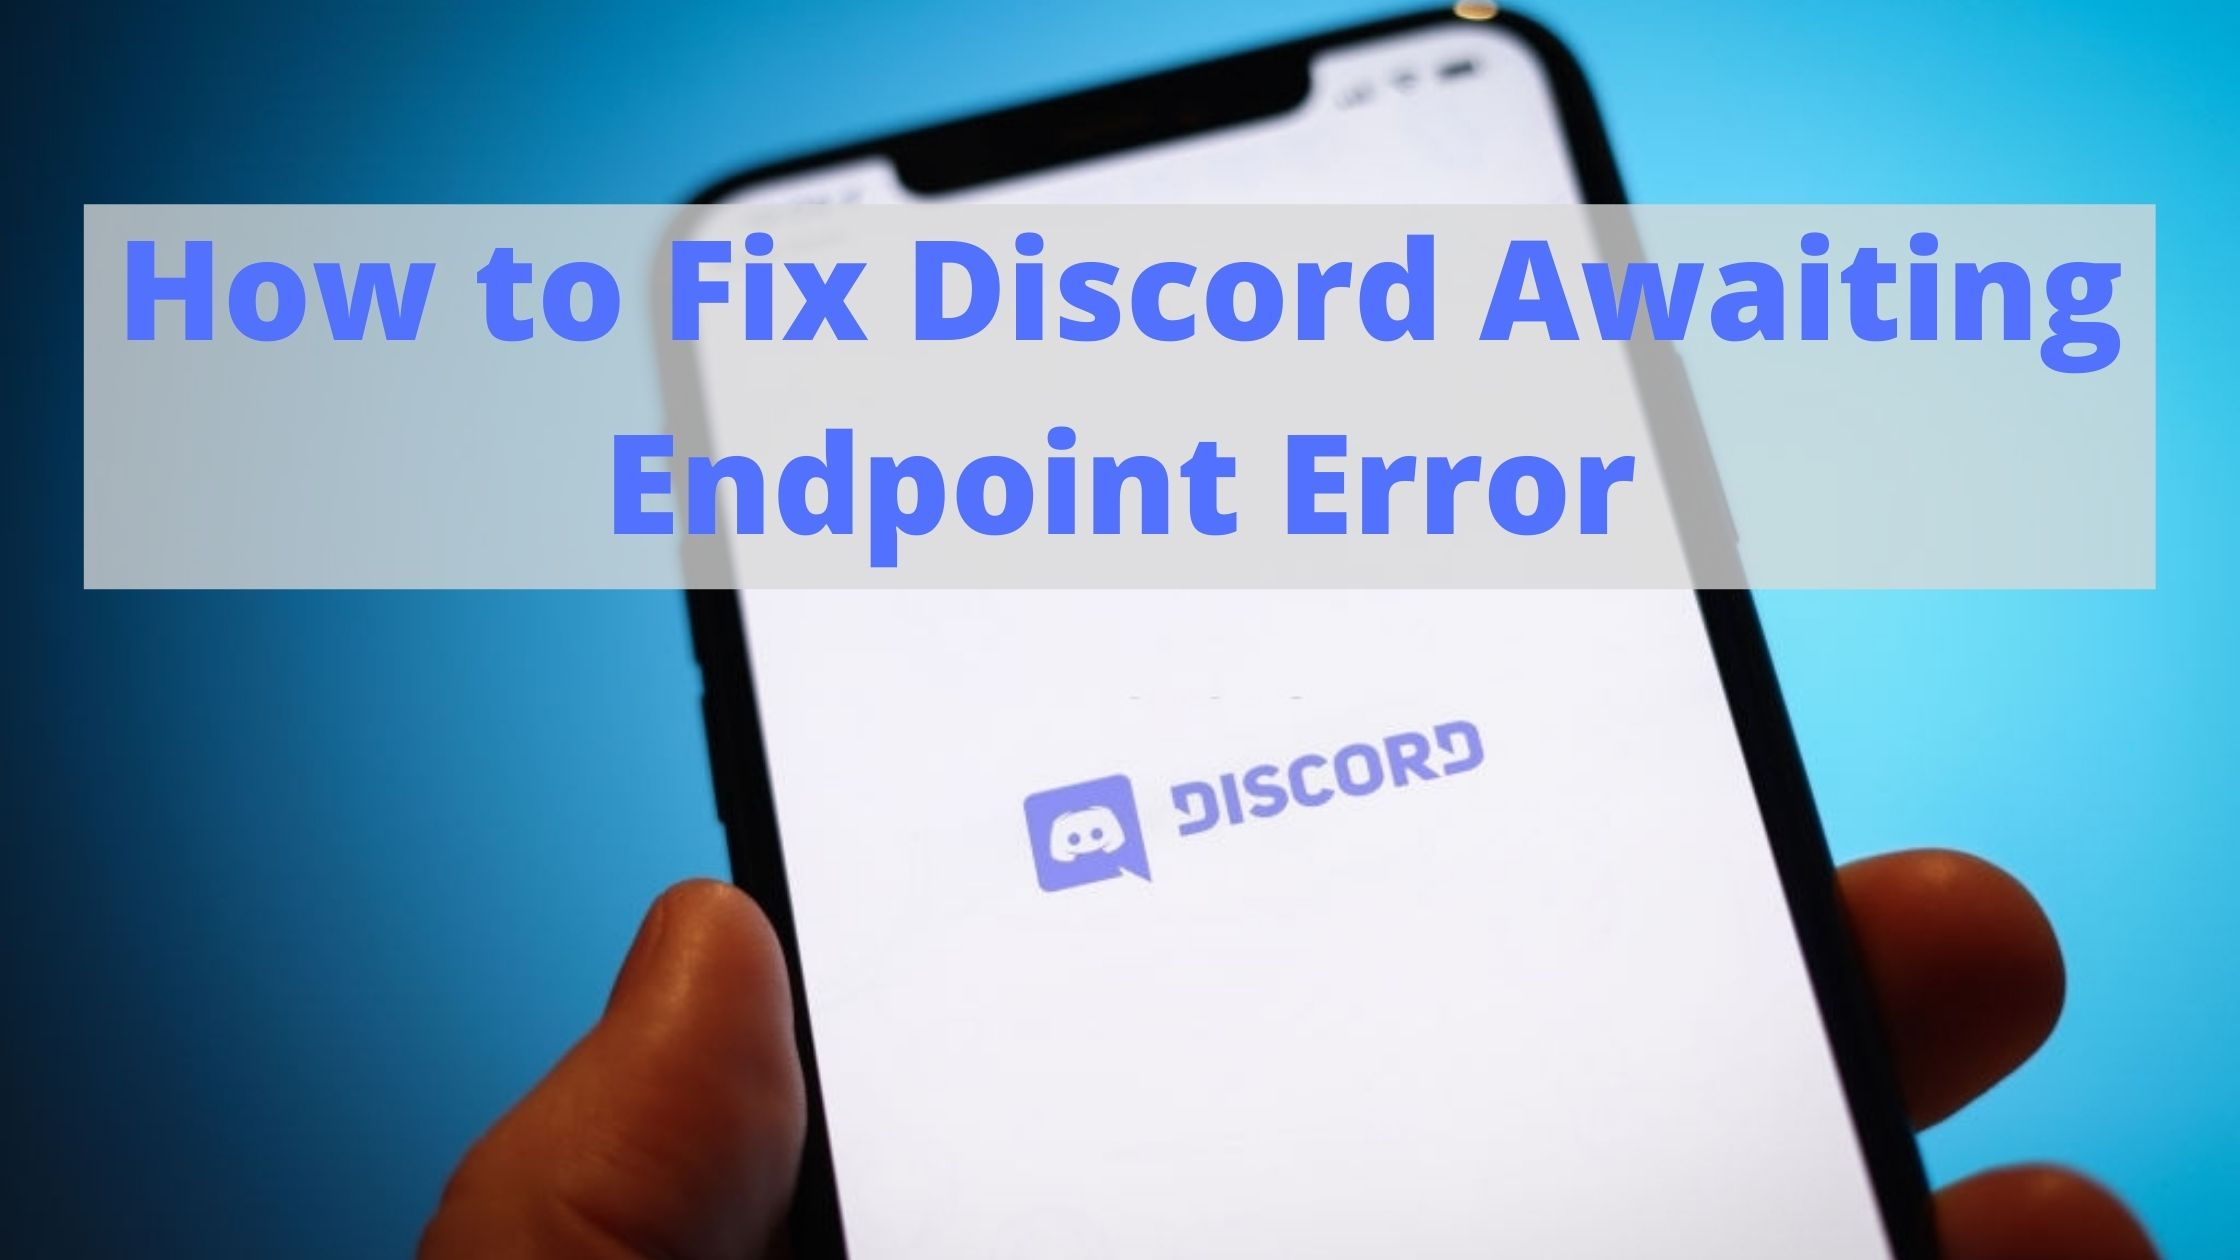 How to fix Discord awaiting endpoint connection error